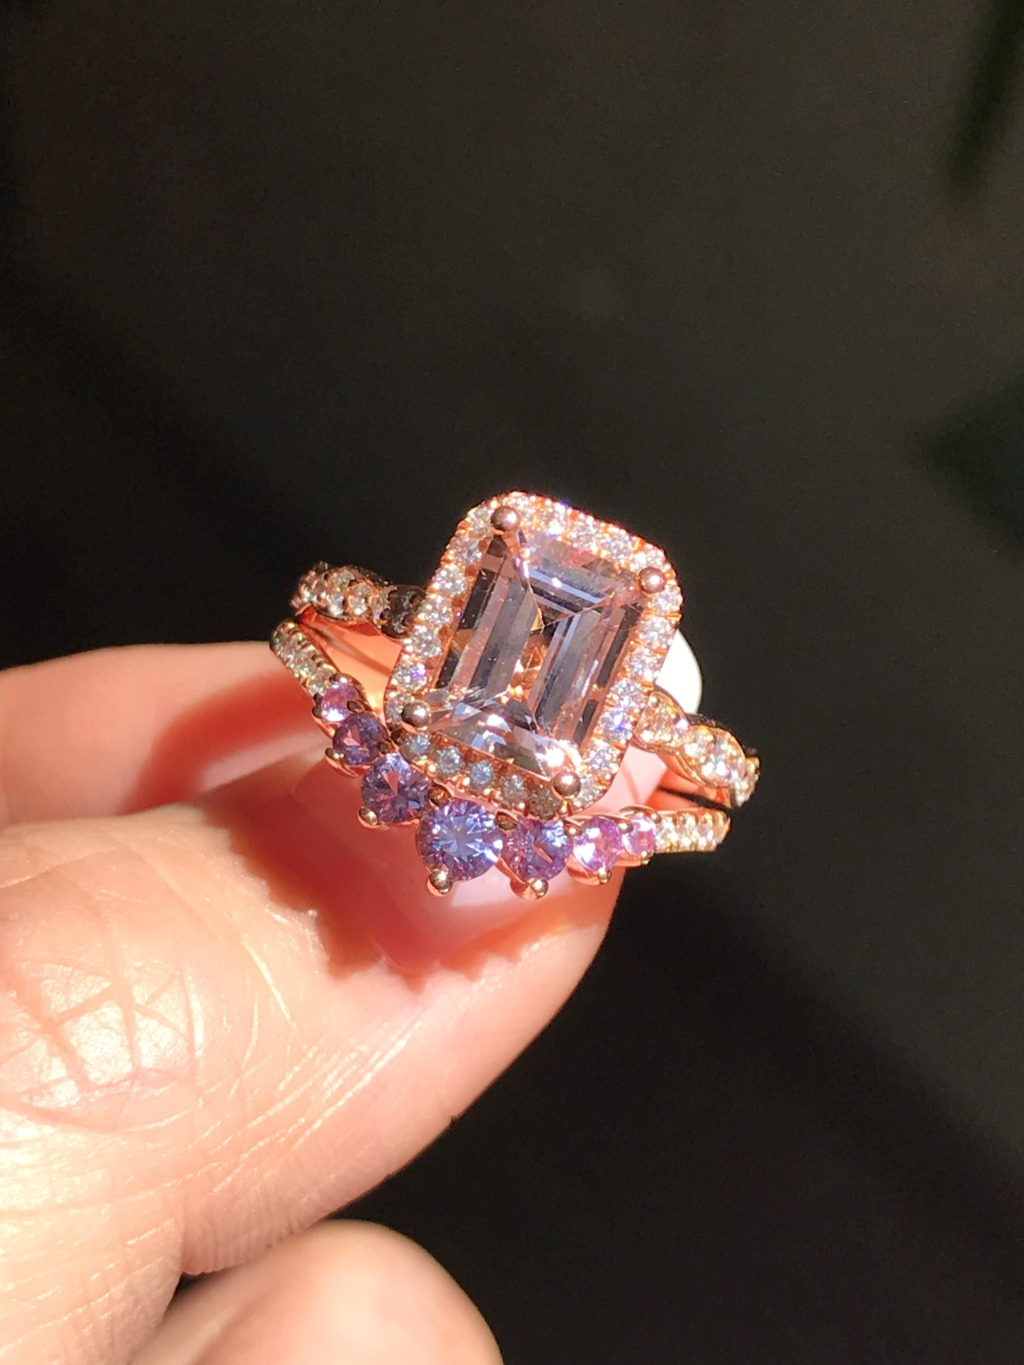 Peach and purple meet and fall in love in this Emerald Cut Morganite Halo Diamond Engagement Ring with Curved 7 Stone Purple Sapphire